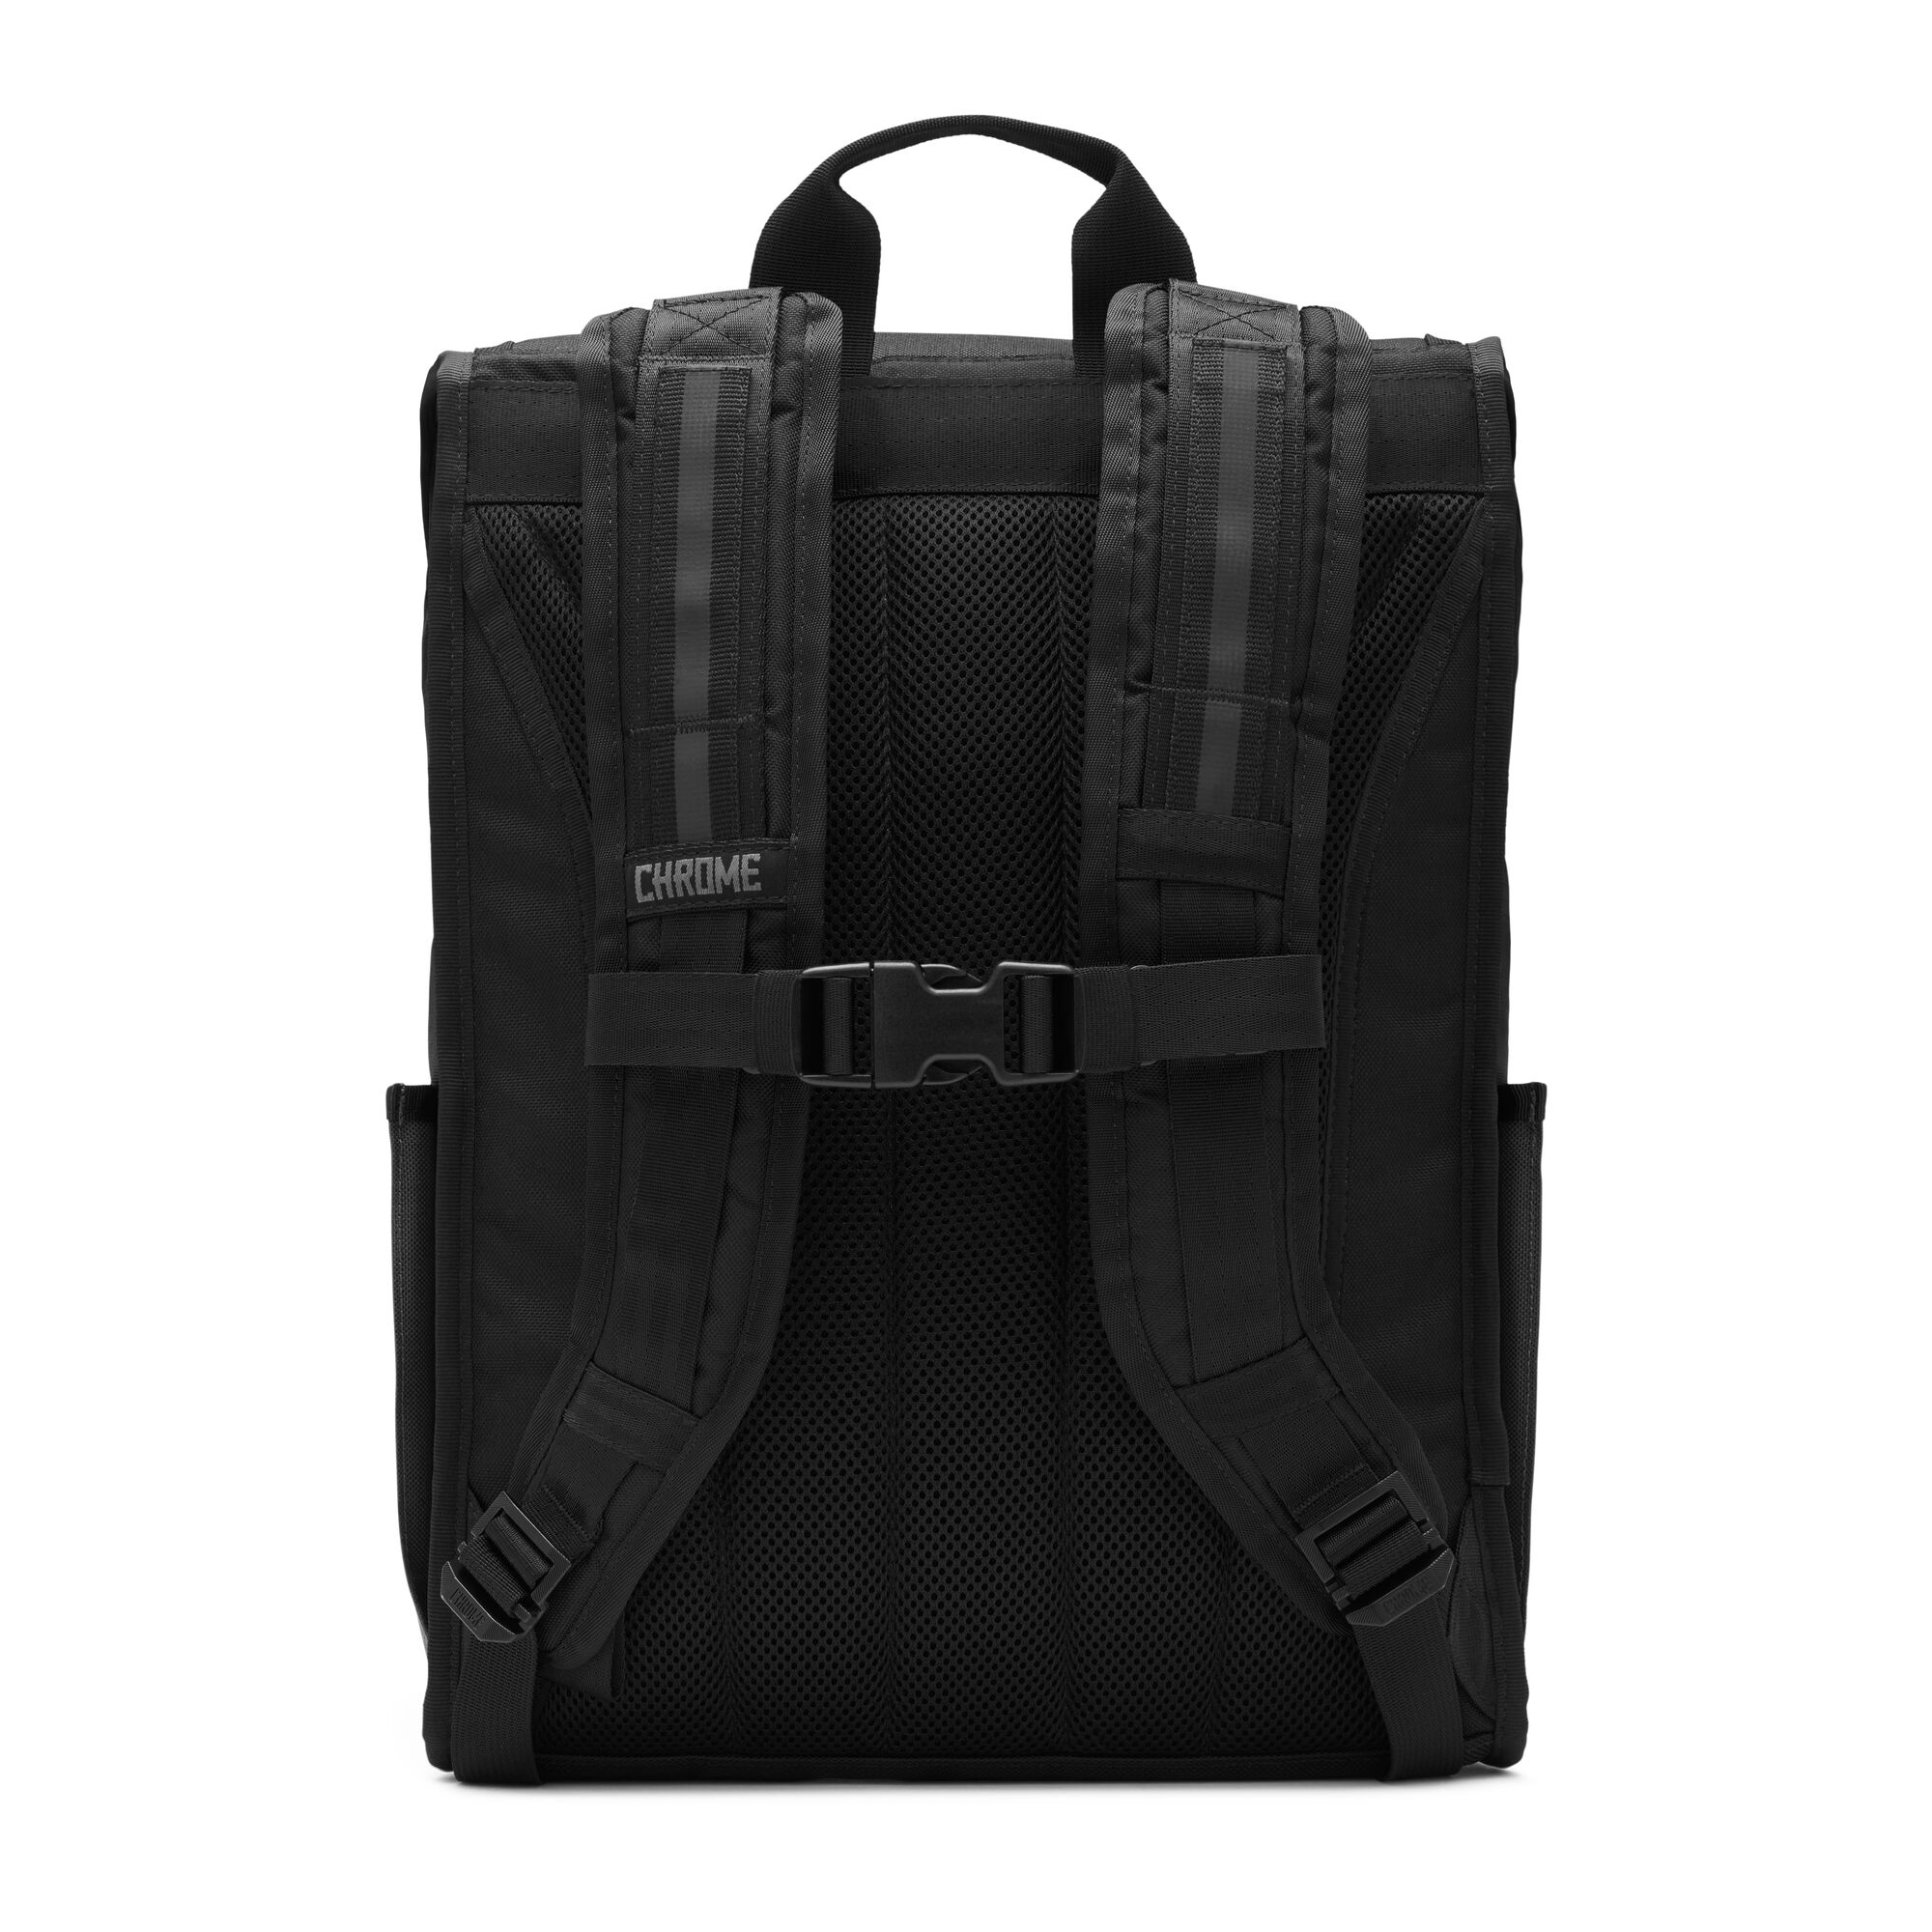 6fb7a86b4fbd Soma Backpack - Fits laptops up to 15